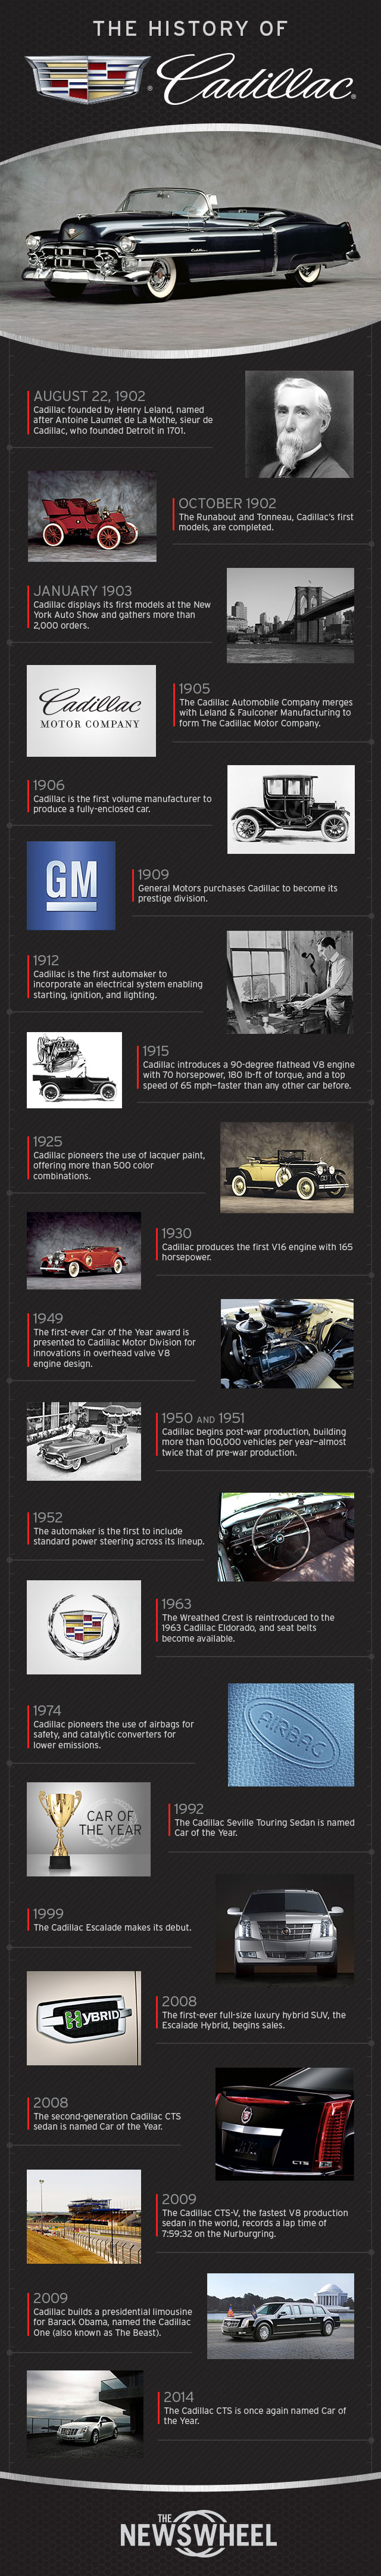 History of Cadillac infographic